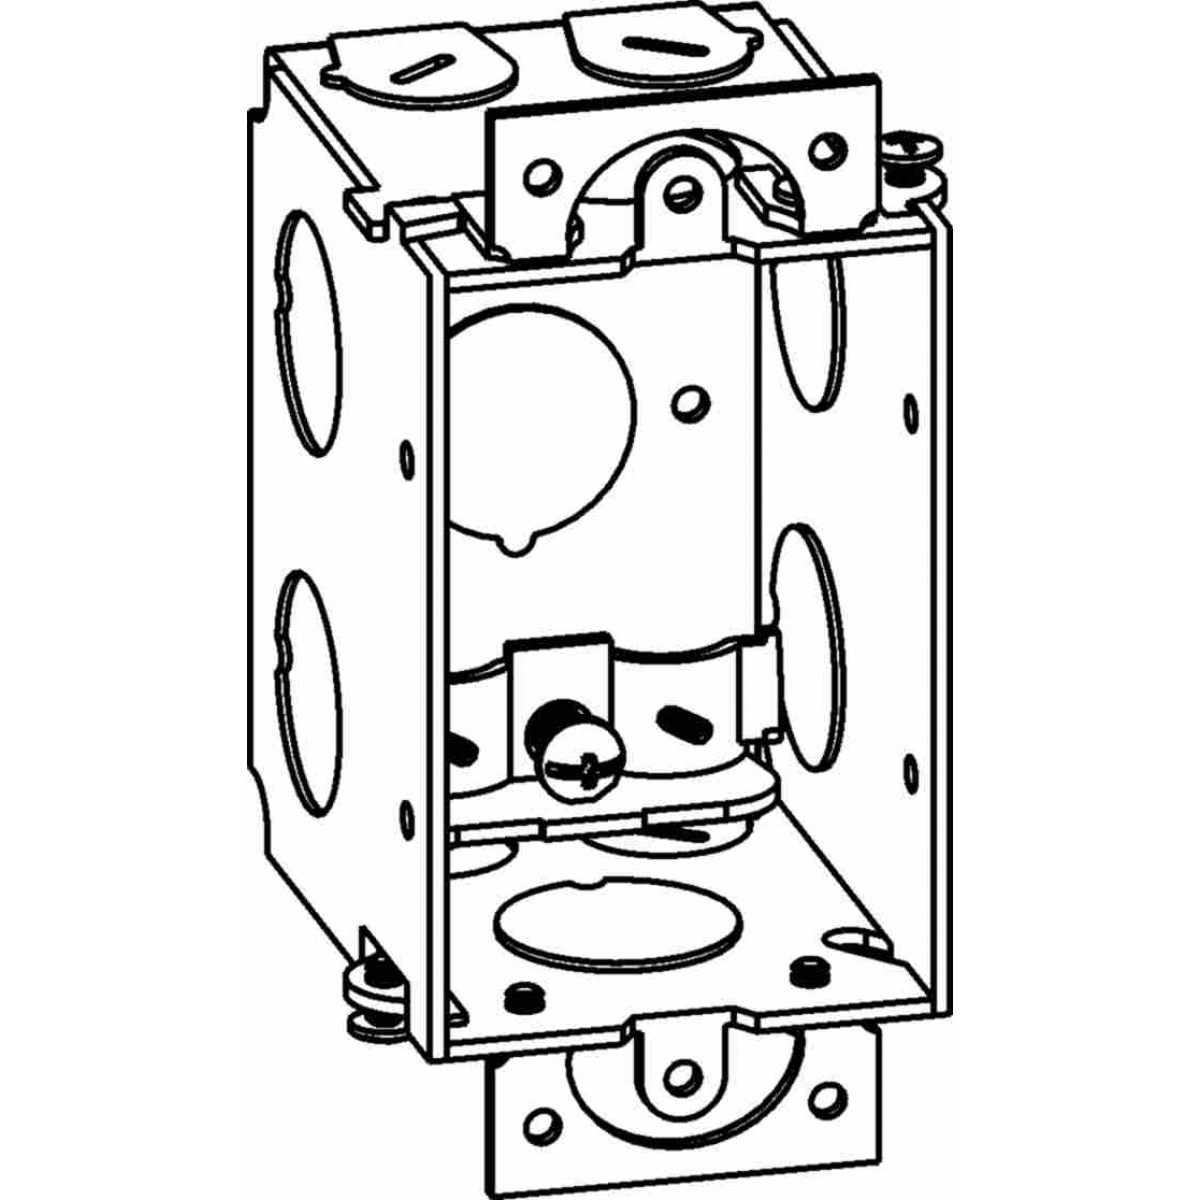 gb-1-nm - gangable switch boxes - electrical junction boxes